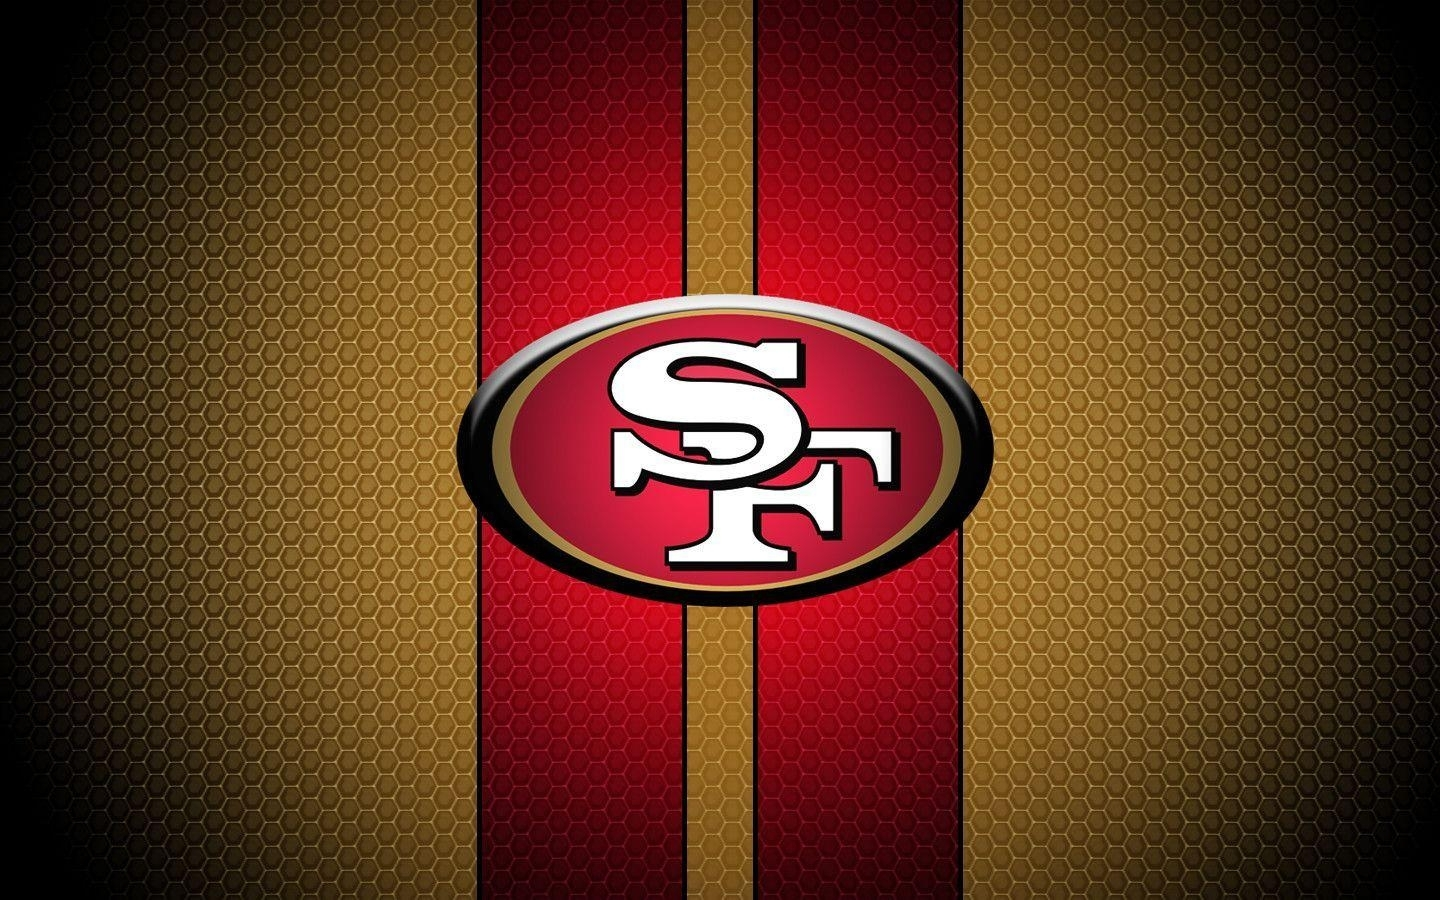 10 Best 49Er Wallpaper For Android FULL HD 1920×1080 For PC Desktop